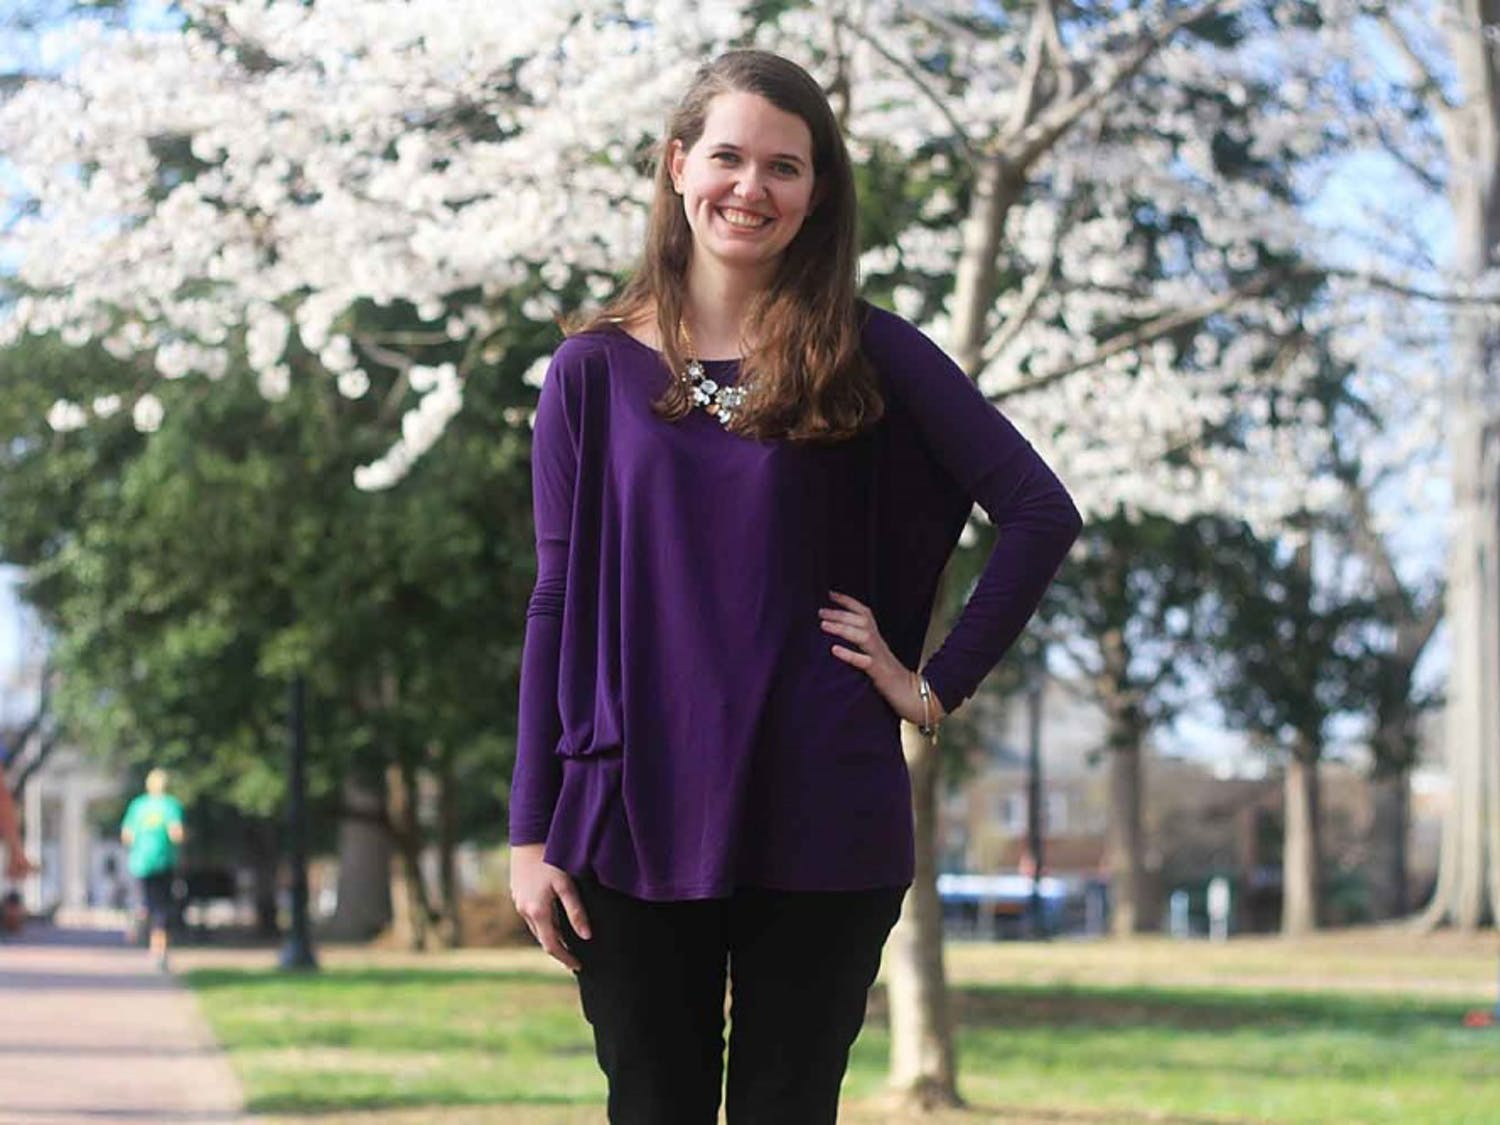 Paige Ladisic and bradley Saacks are running for The Daily Tar Heel's 2015-2016 Editor in Chief.